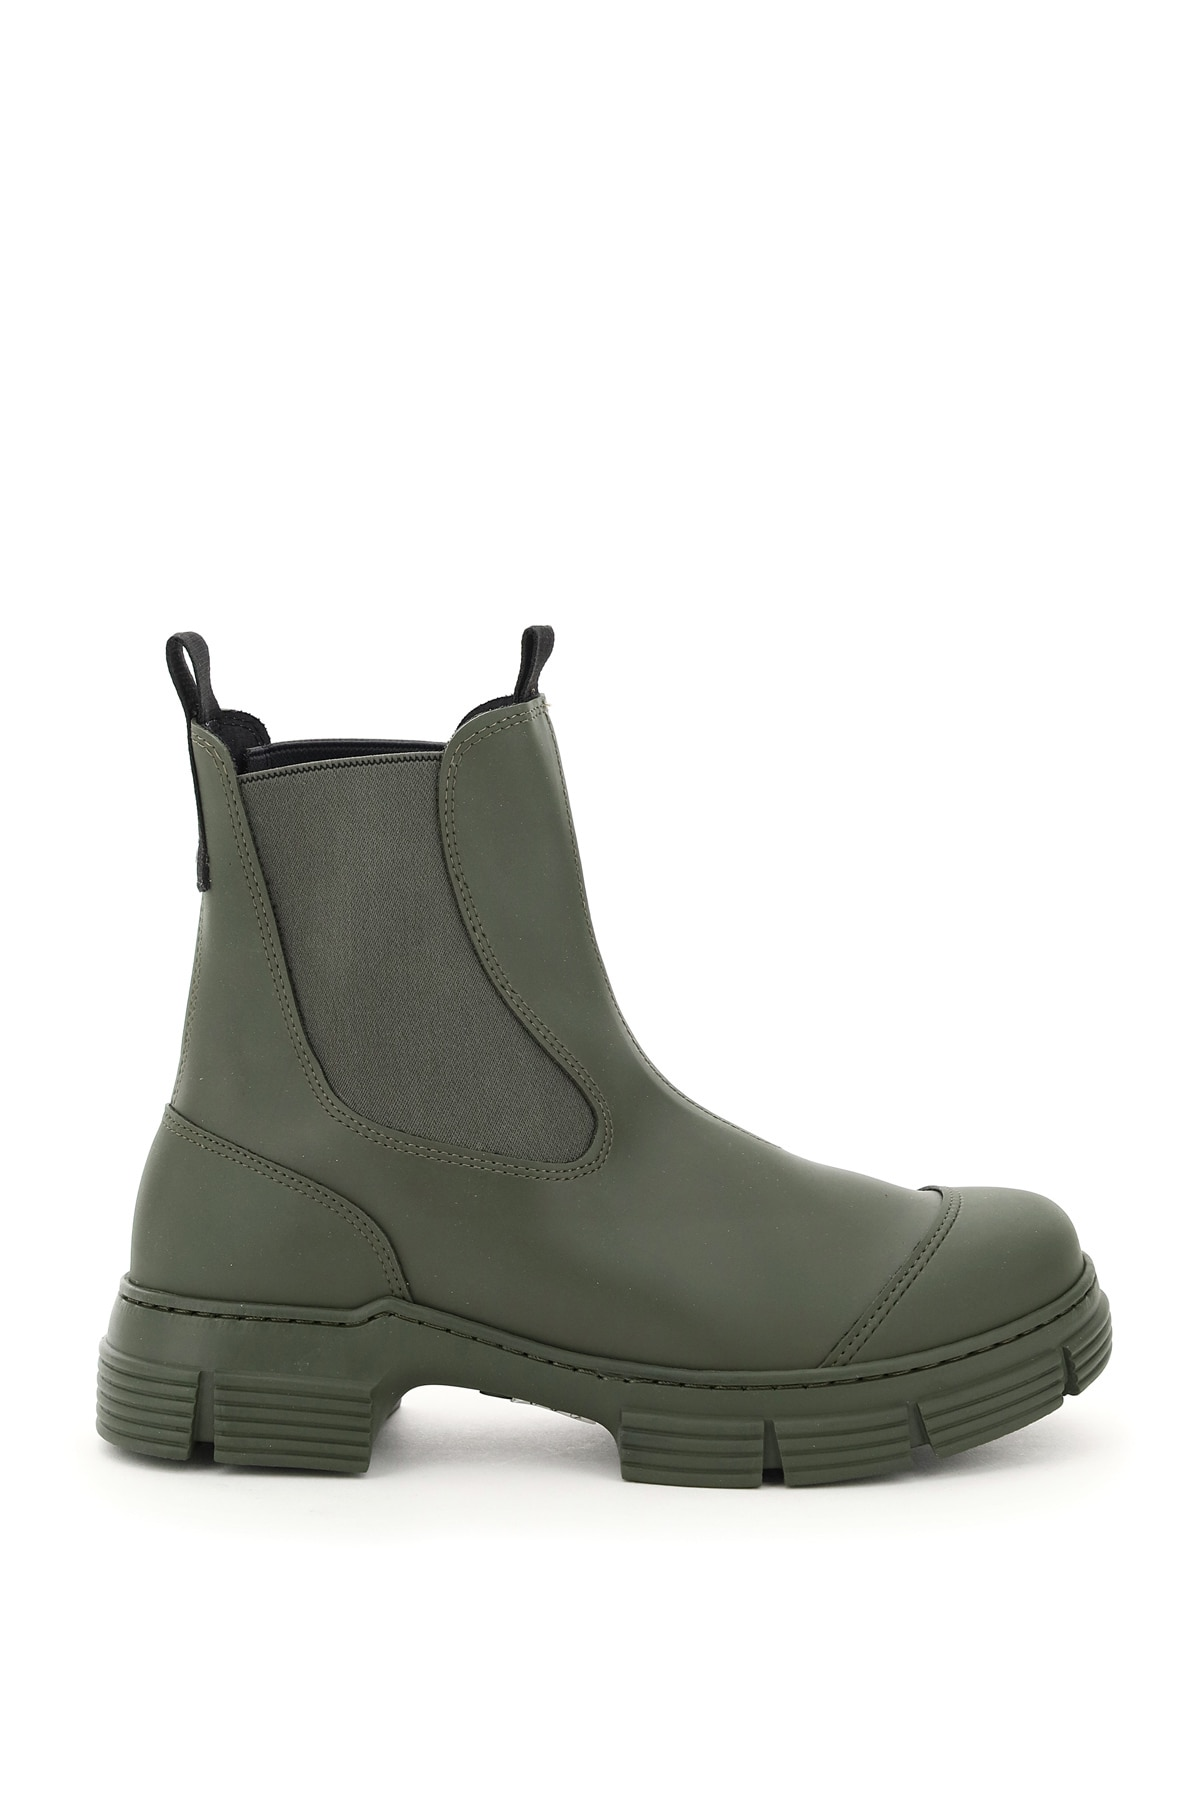 Ganni Recycled Rubber Chelsea Boots 36 Green